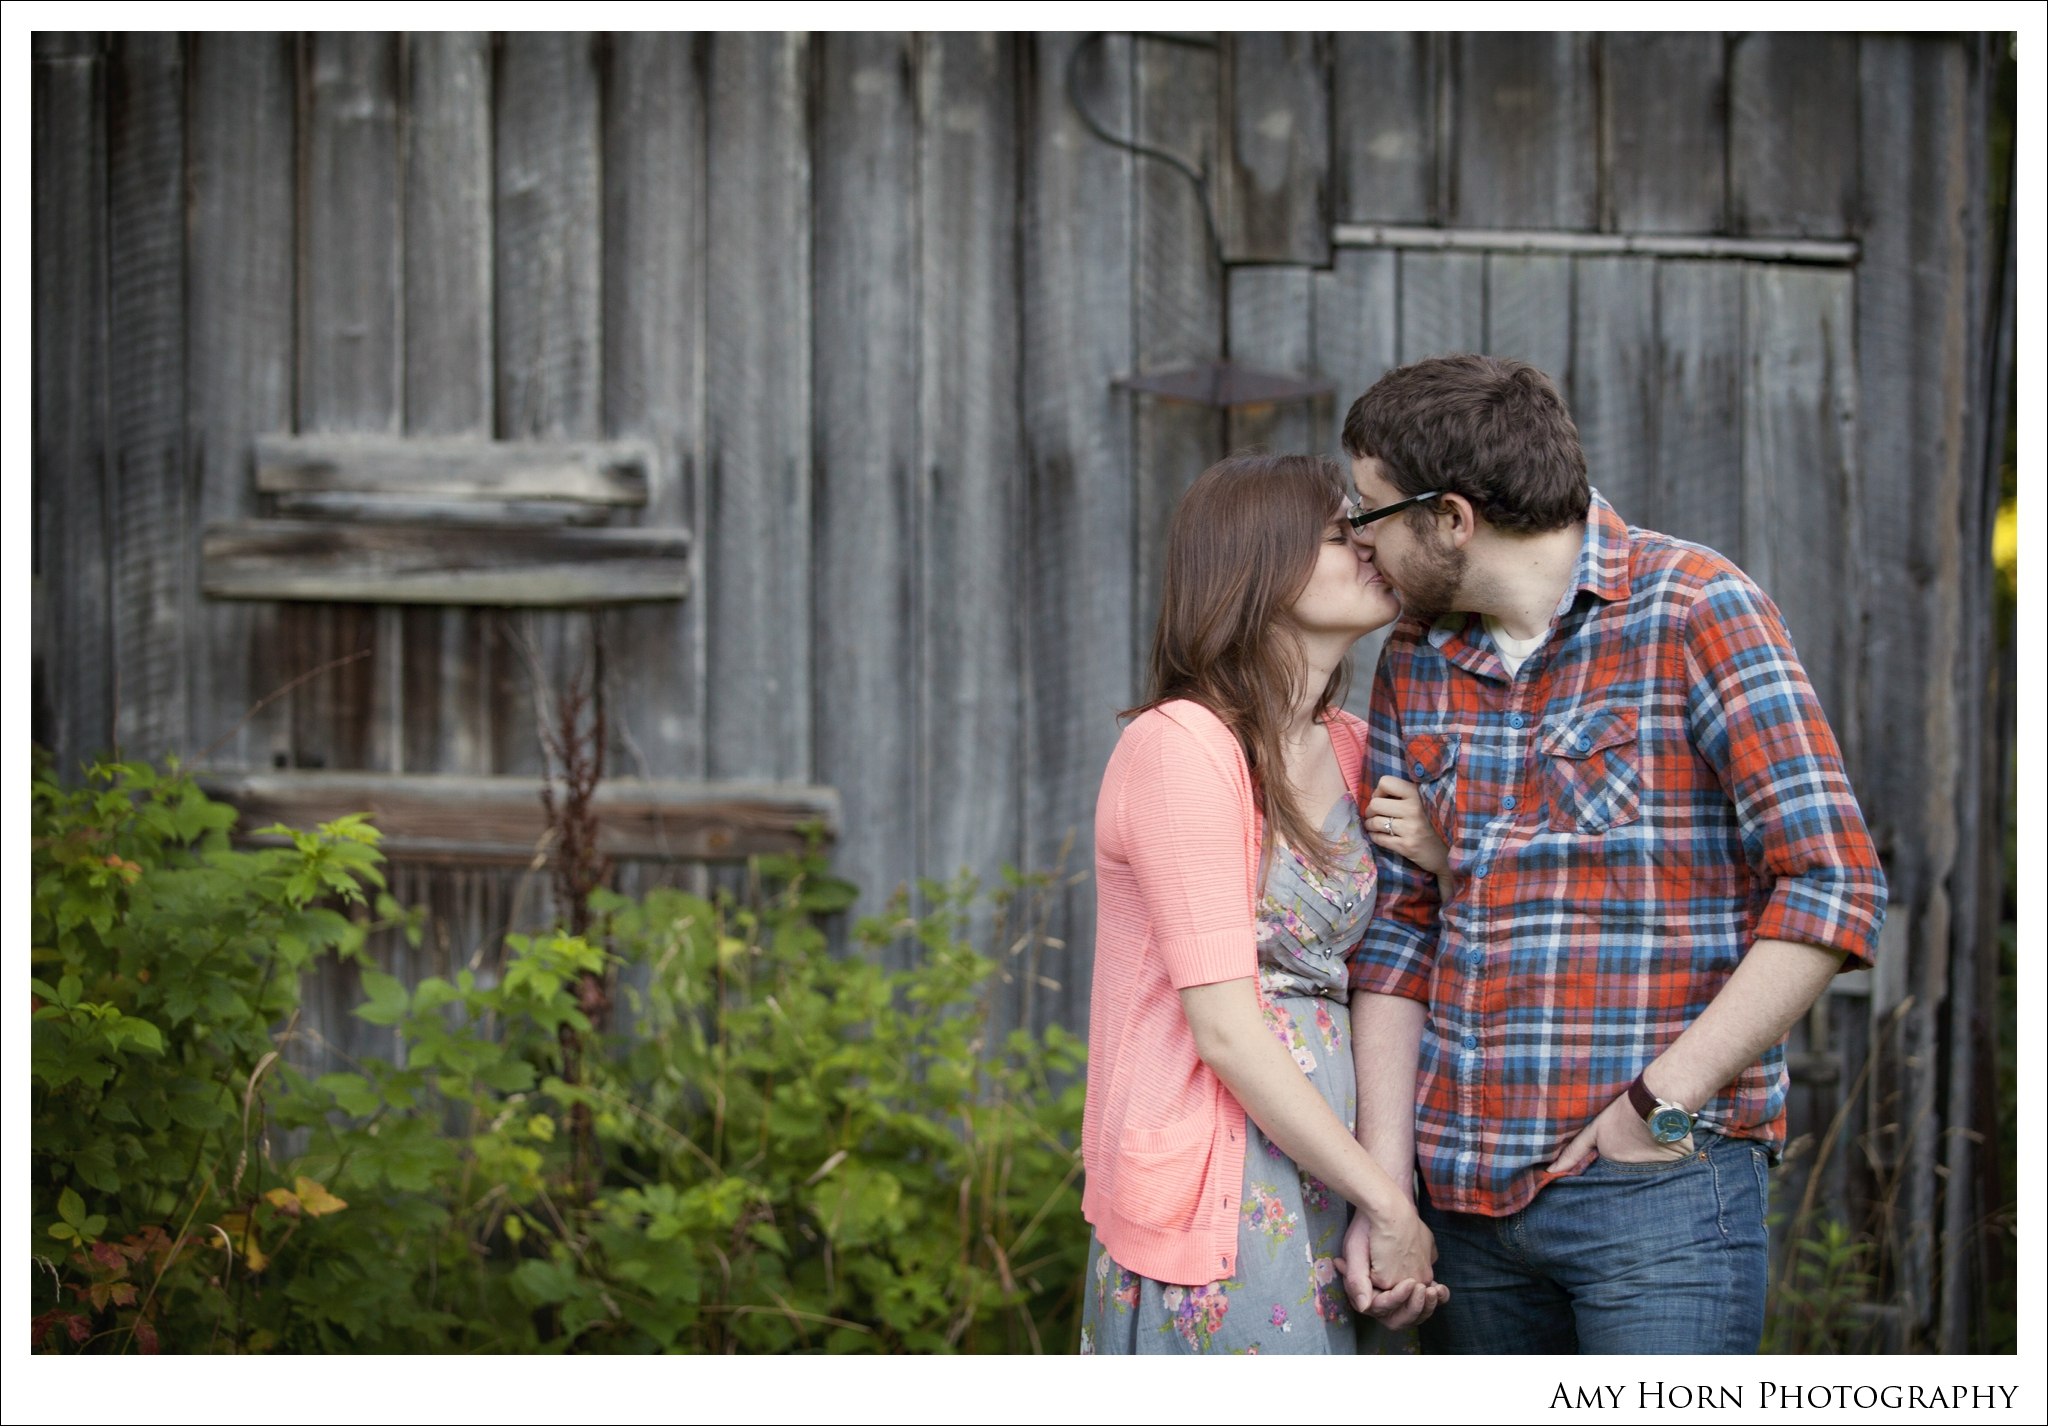 madison indiana wedding photographer, lawrenceburg indiana wedding, amy horn, engagement photography, field photography, country engagement session, wedding and engagement session ideas, engagement session012.jpg